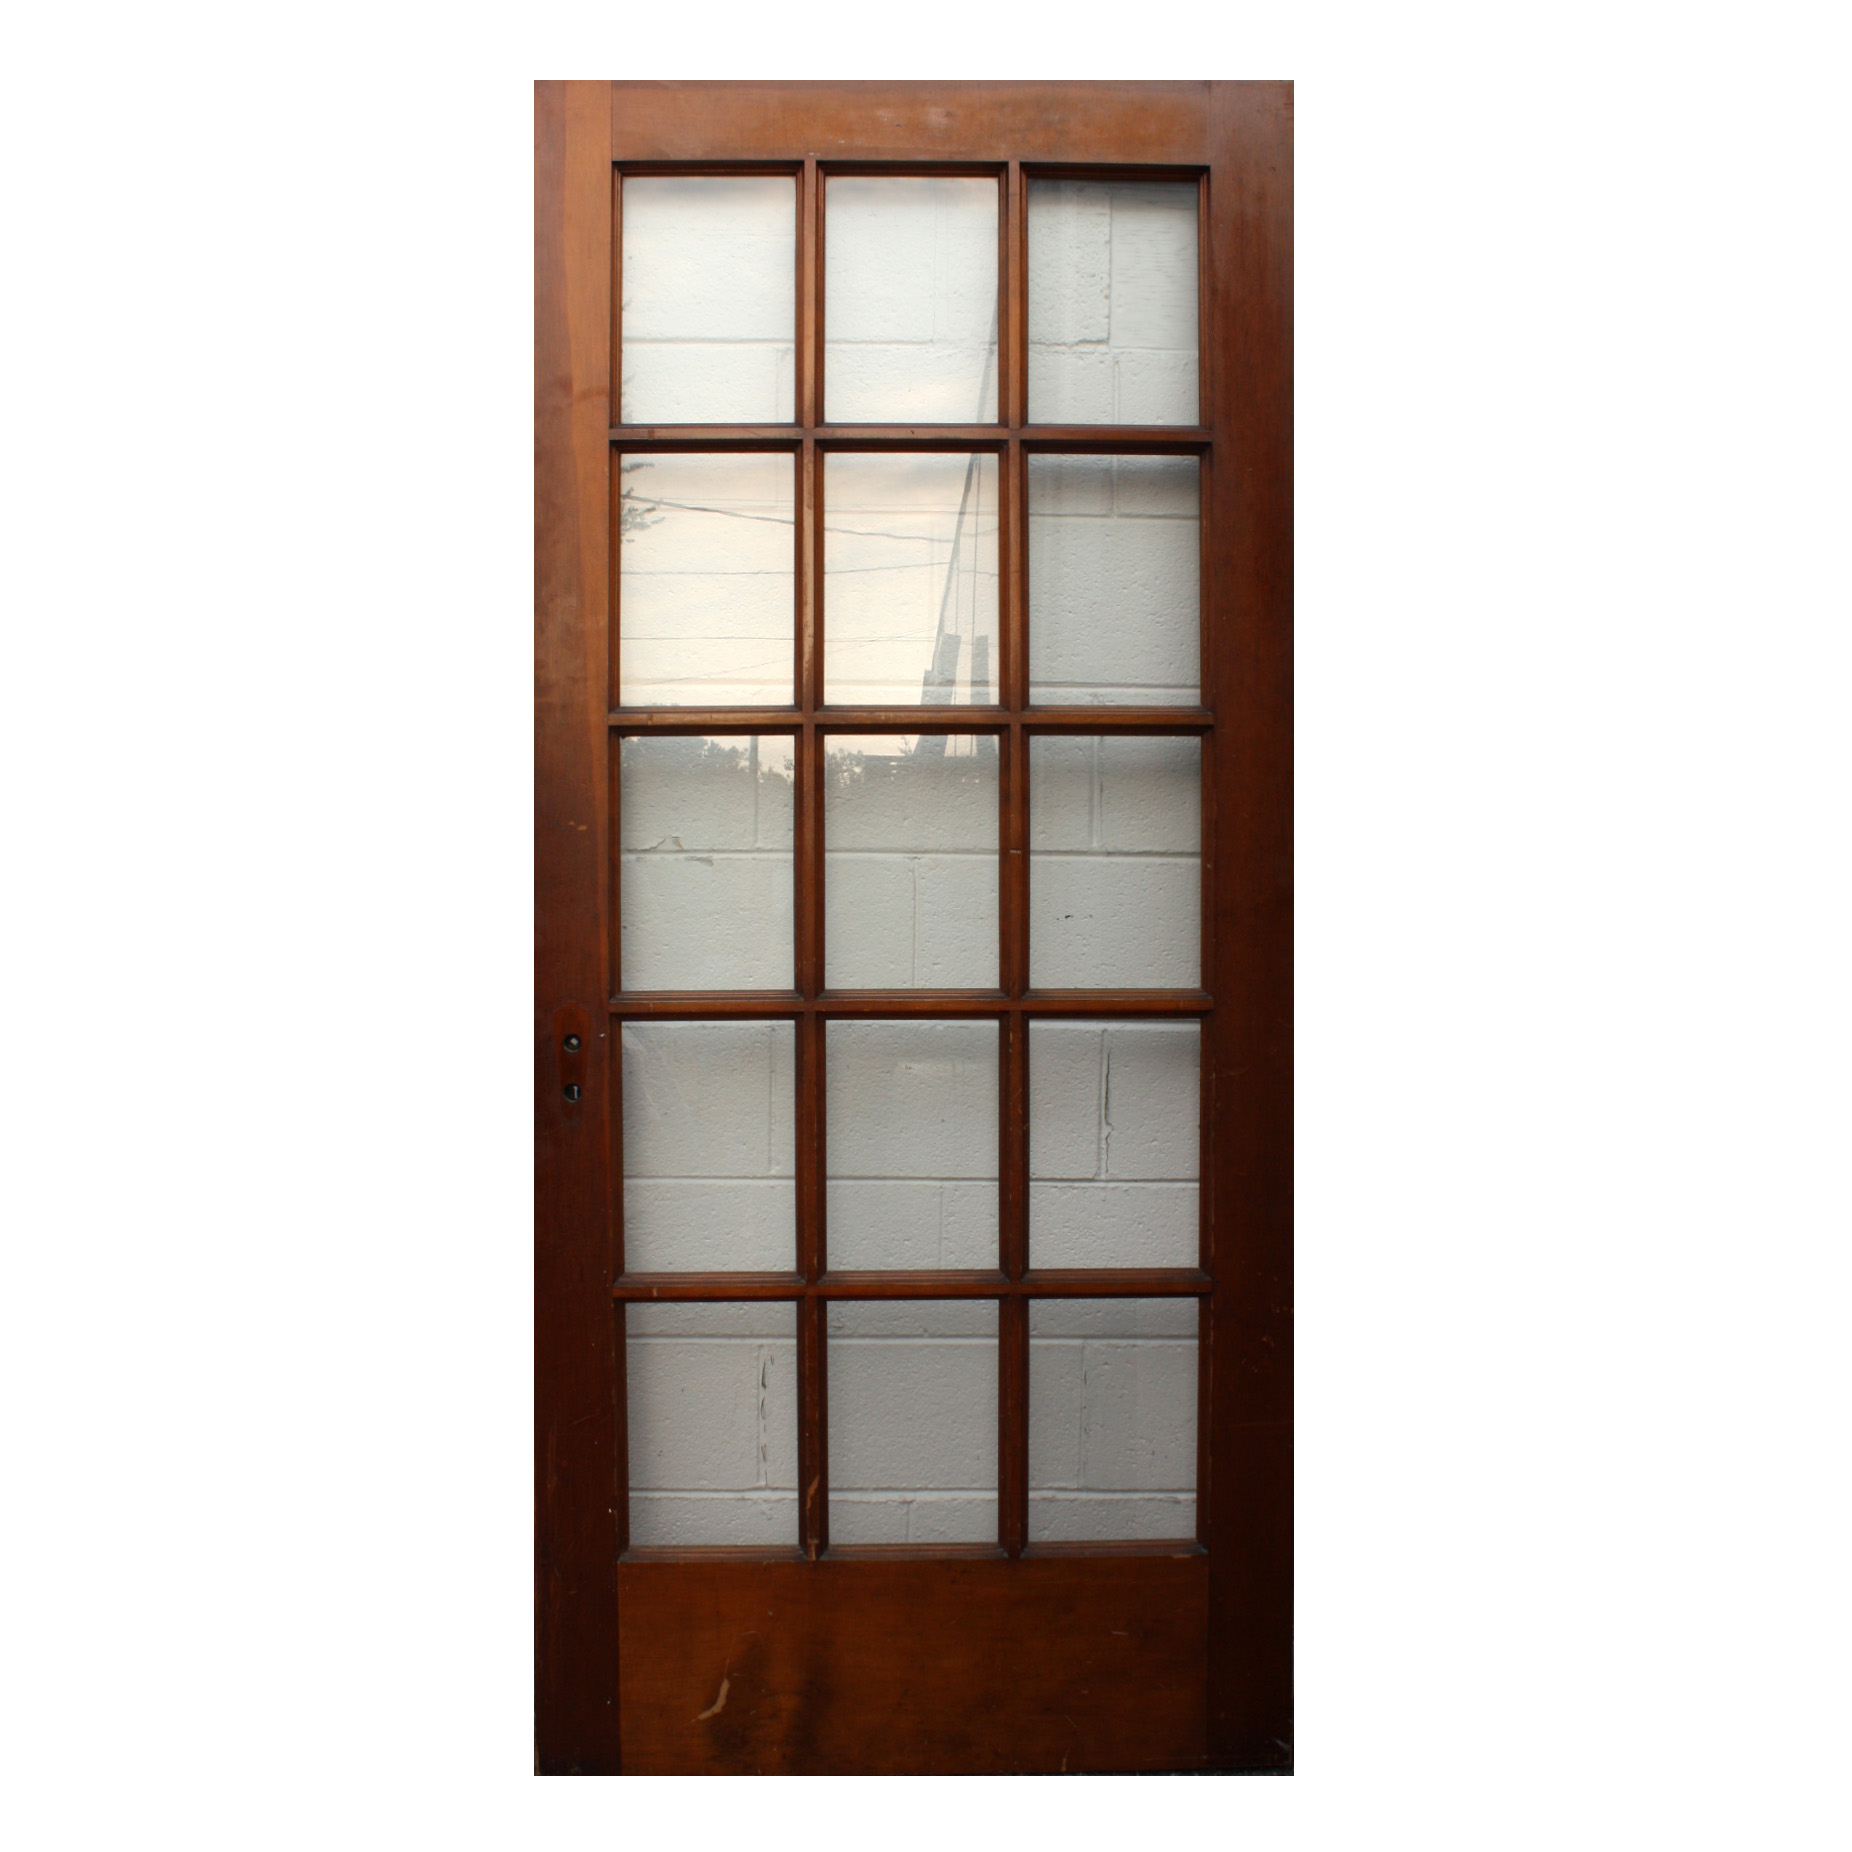 Antique 36 Divided Light Entry Door, NED183-RW For Sale | Antiques ...